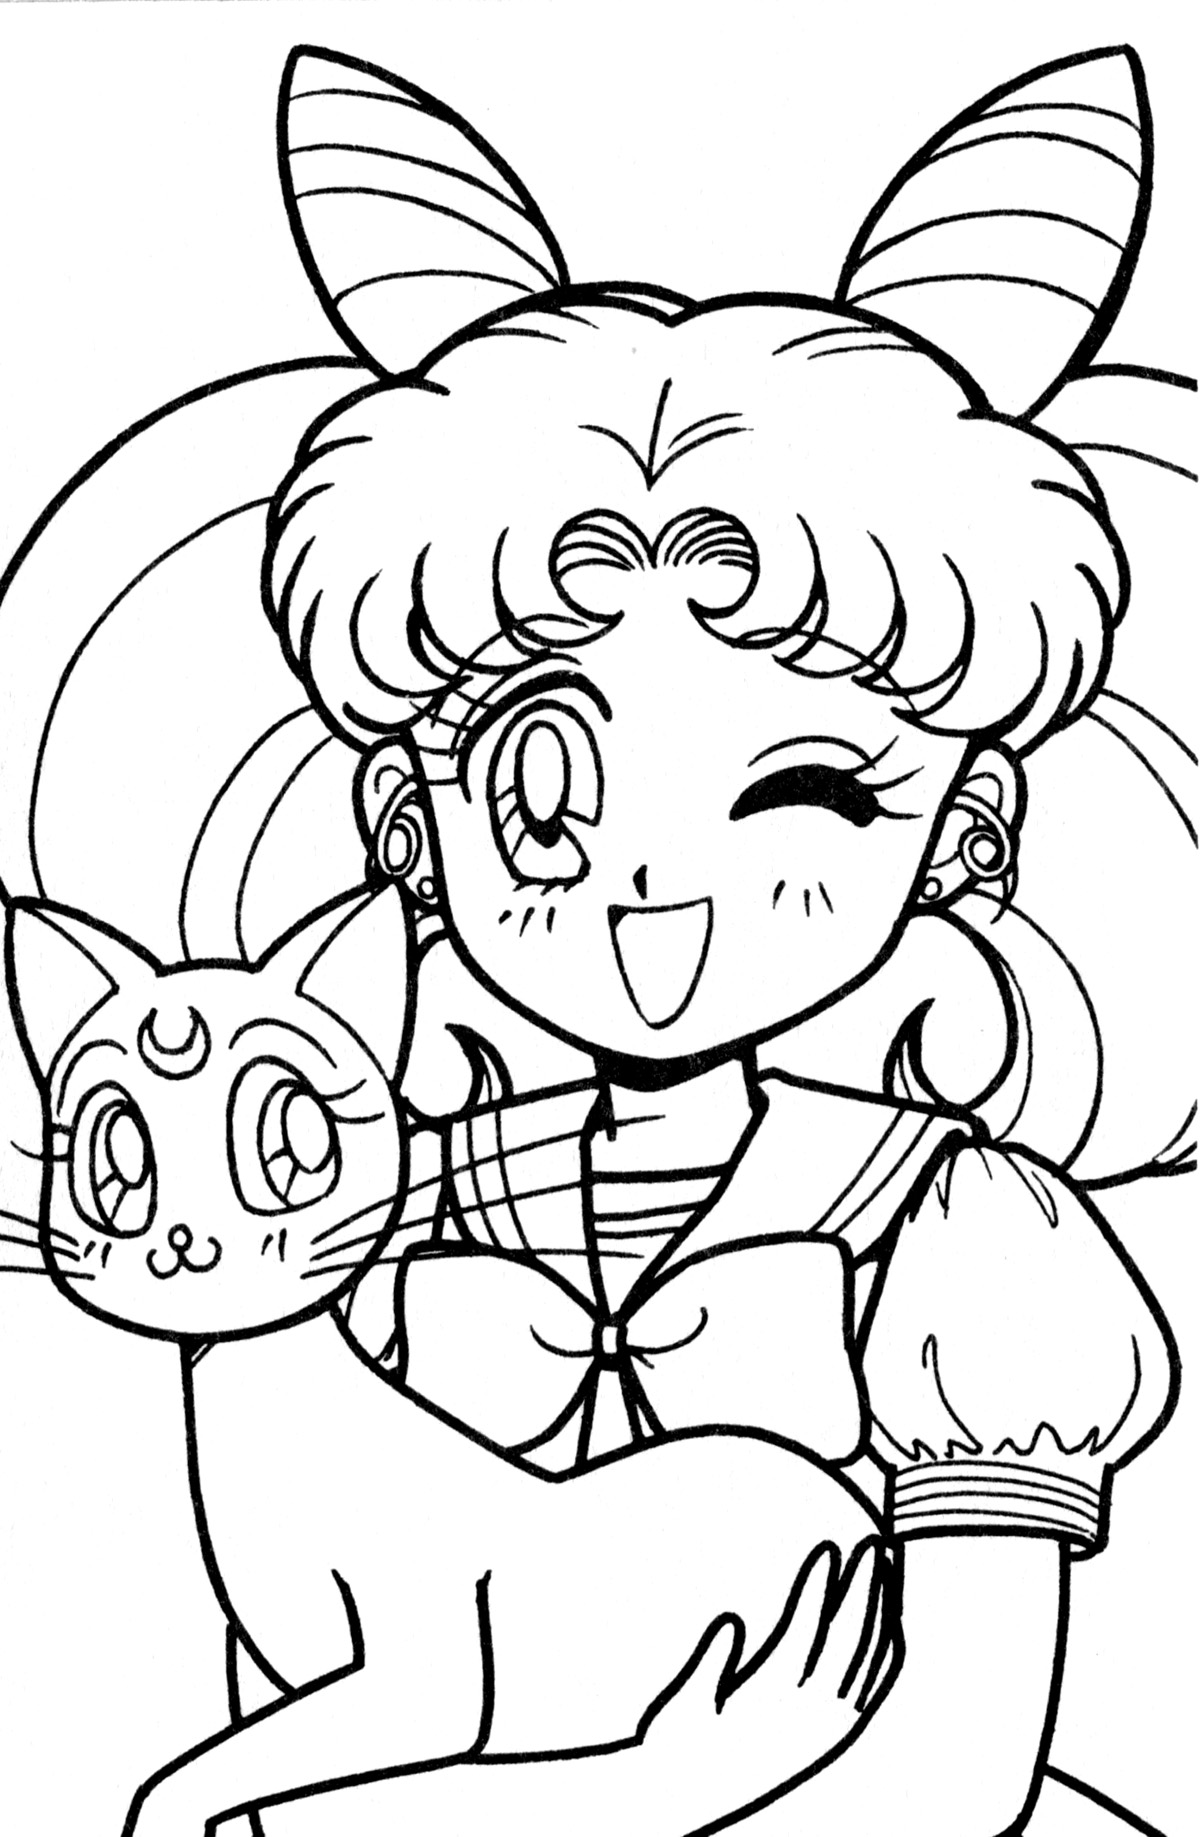 chibi sailor moon coloring pages lineart chibi sailor moon by the piratequeen on deviantart moon coloring pages sailor chibi